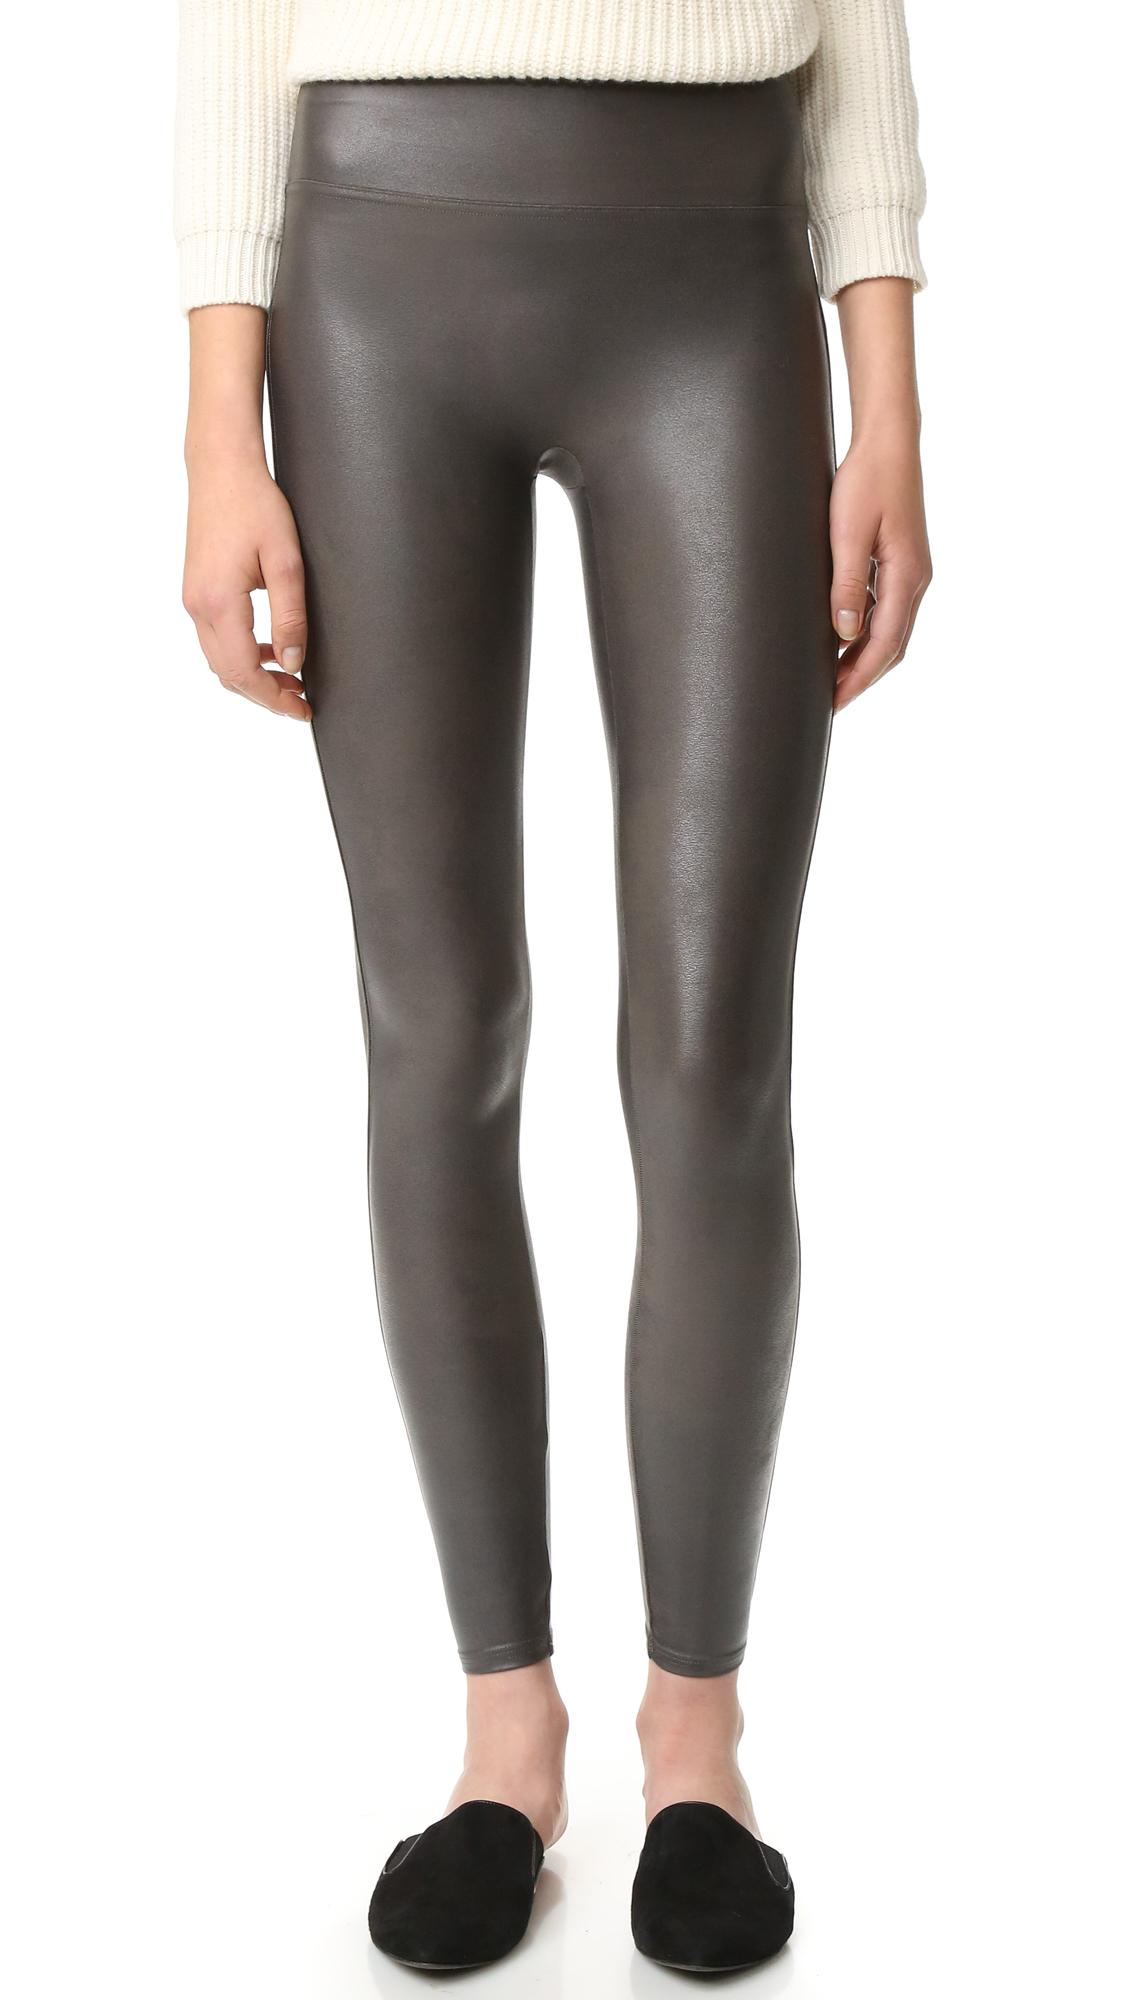 Womens Spanx Faux Leather Leggings recommendations